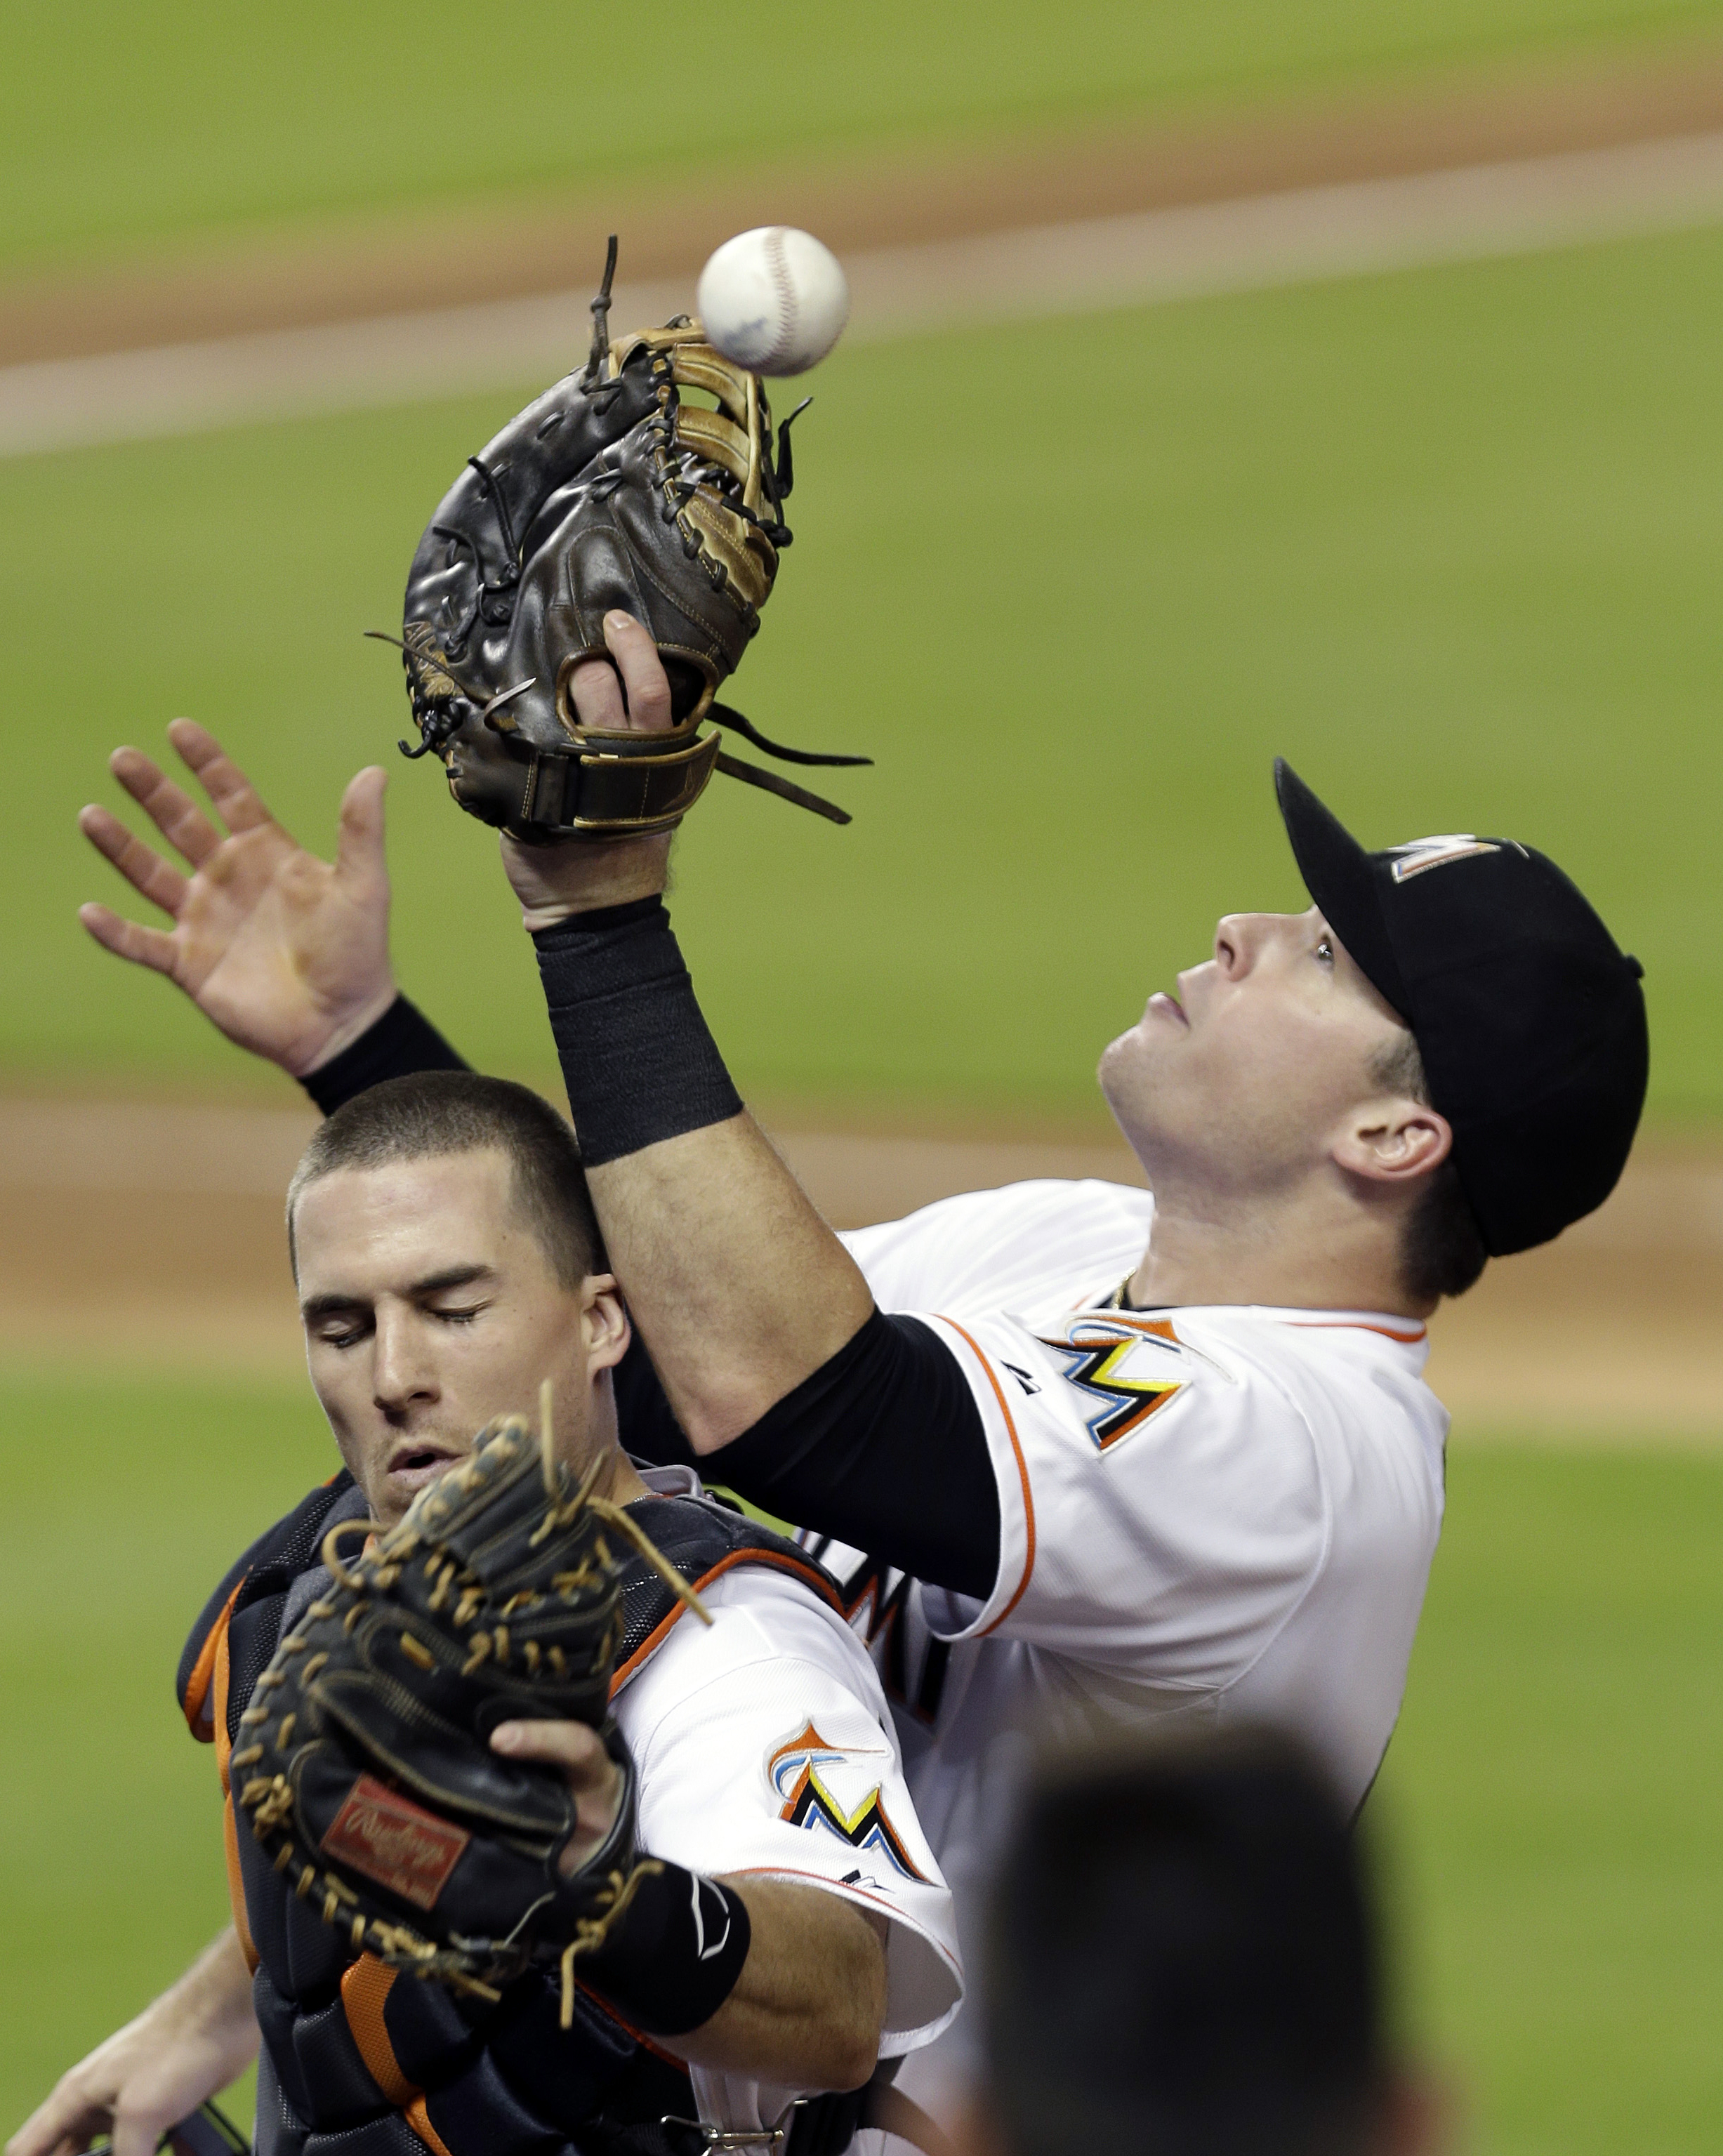 Miami Marlins catcher J.T. Realmuto, left, and first baseman Justin Bour, right, are unable to catch a foul ball hit by Washington Nationals' Yunel Escobar in the third inning of a baseball game, Wednesday, July 29, 2015, in Miami. (AP Photo/Alan Diaz)